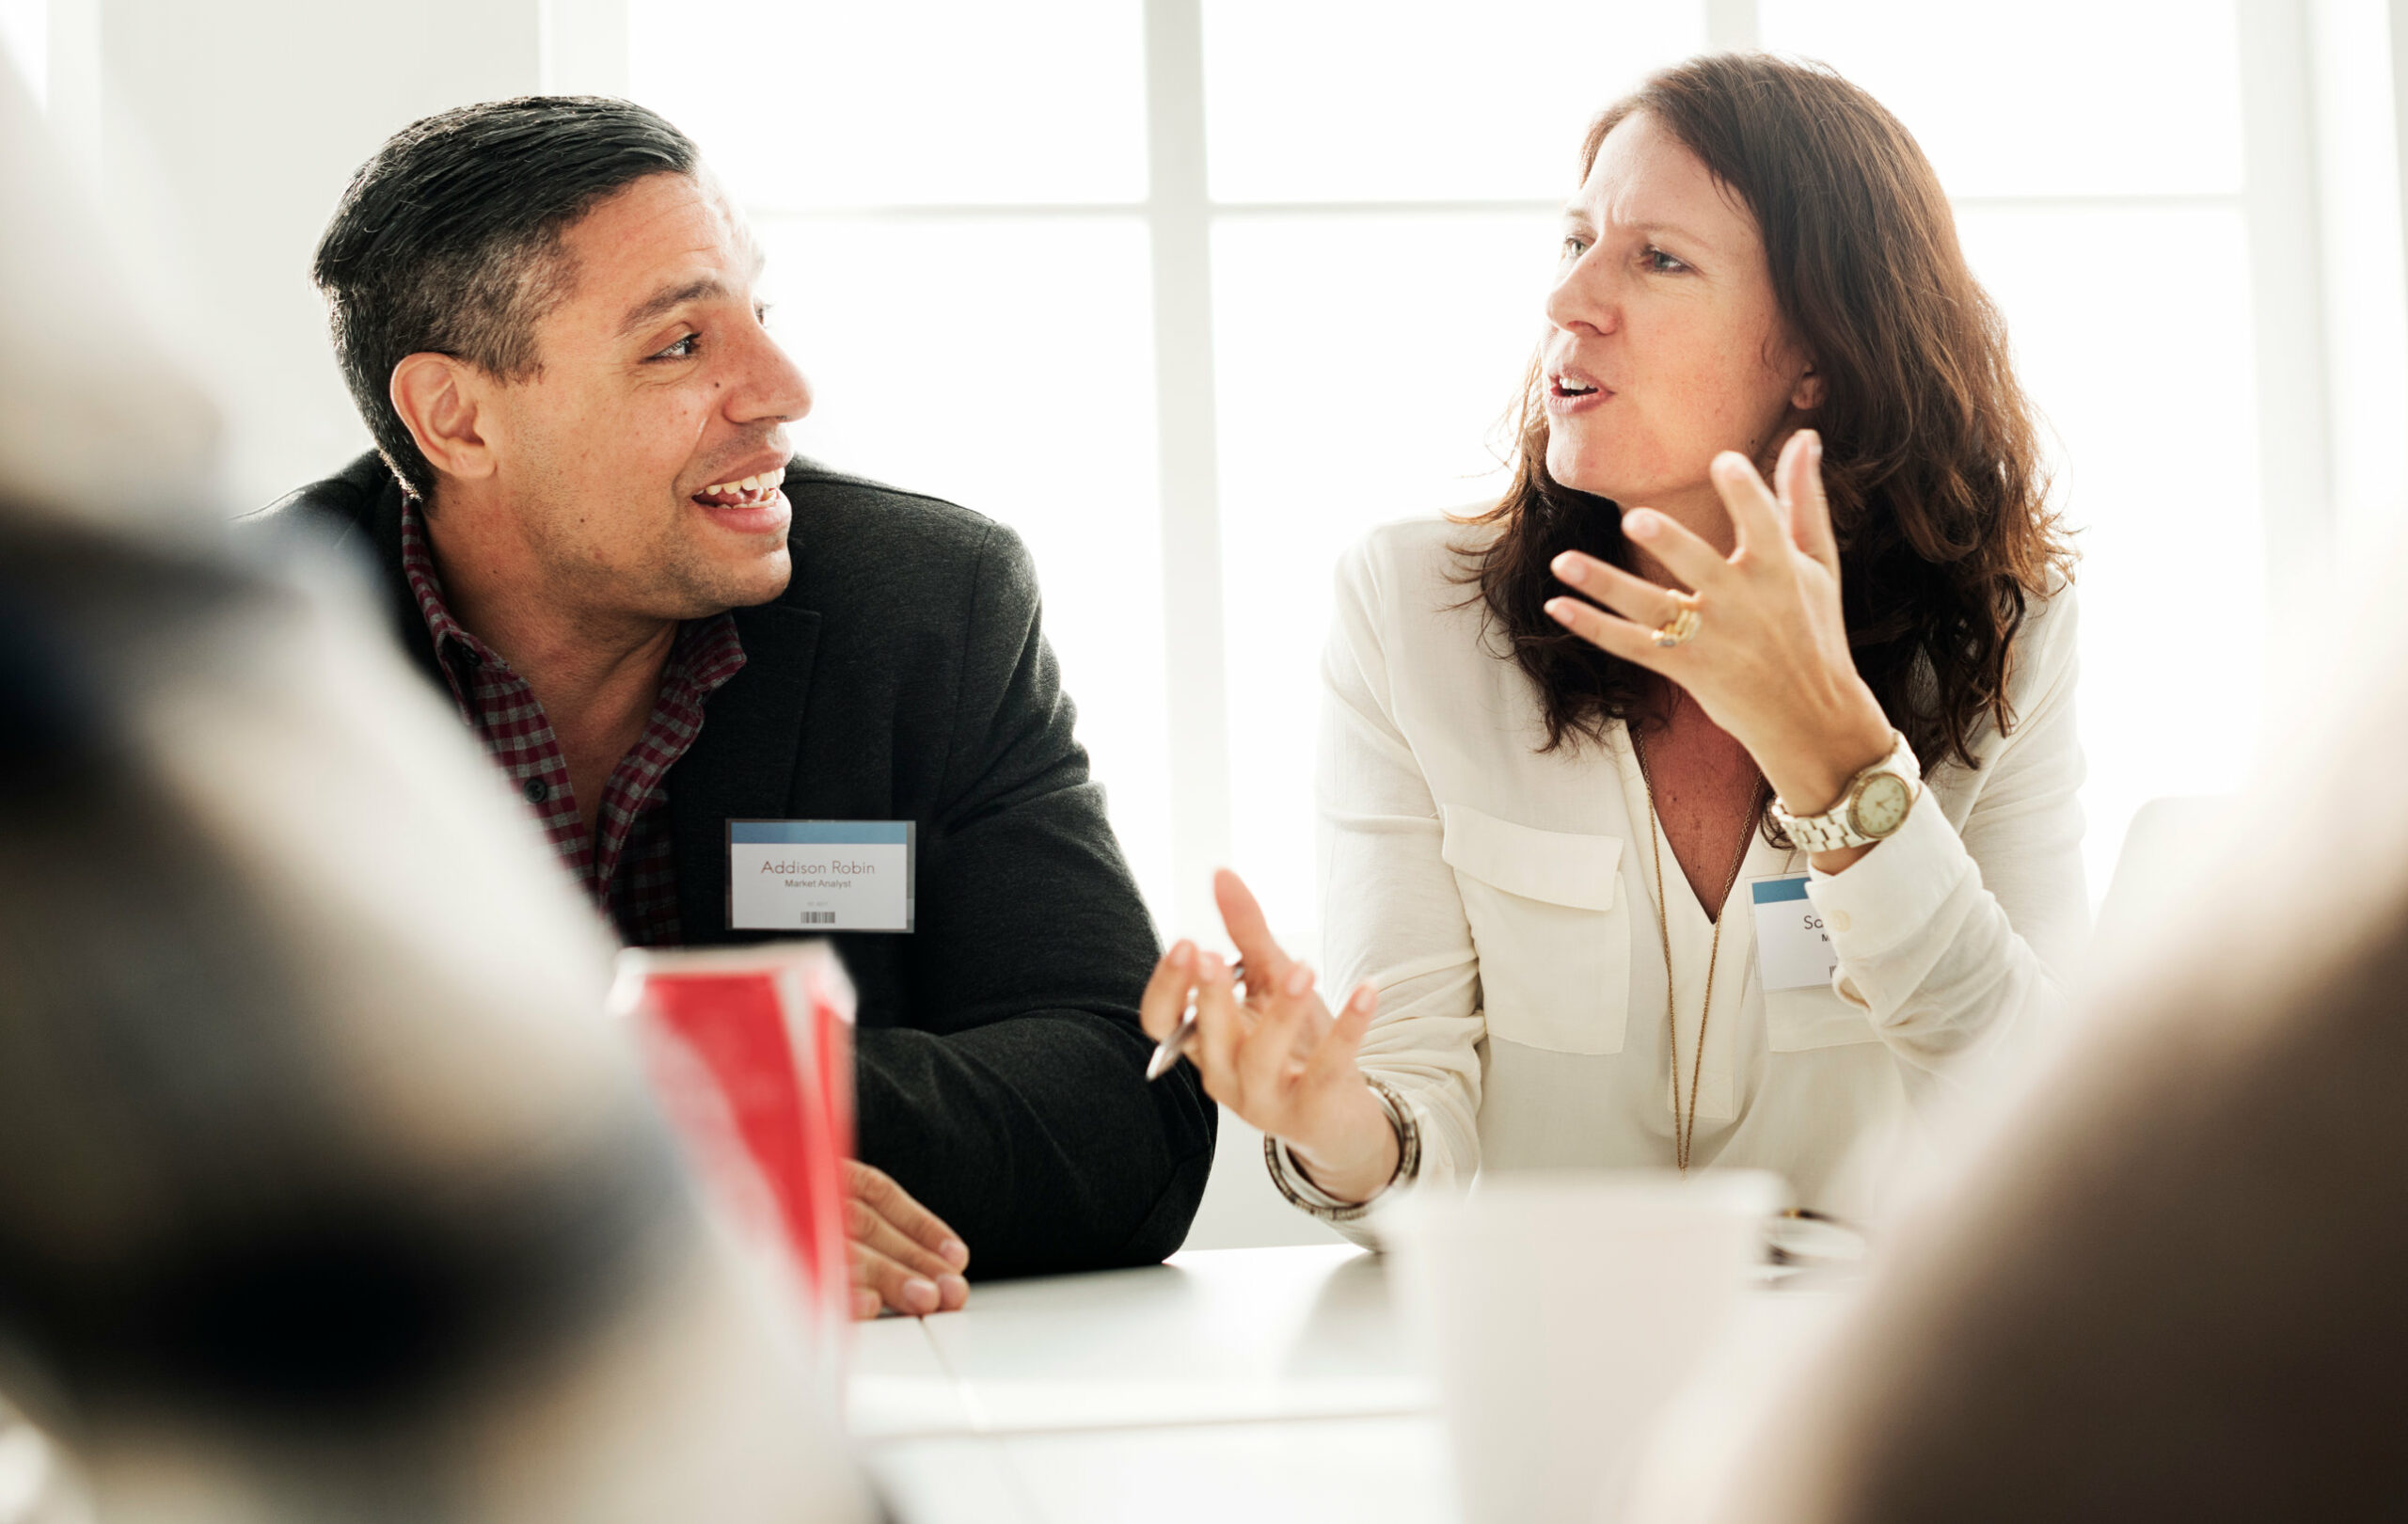 Delivering effective feedback in the workplace